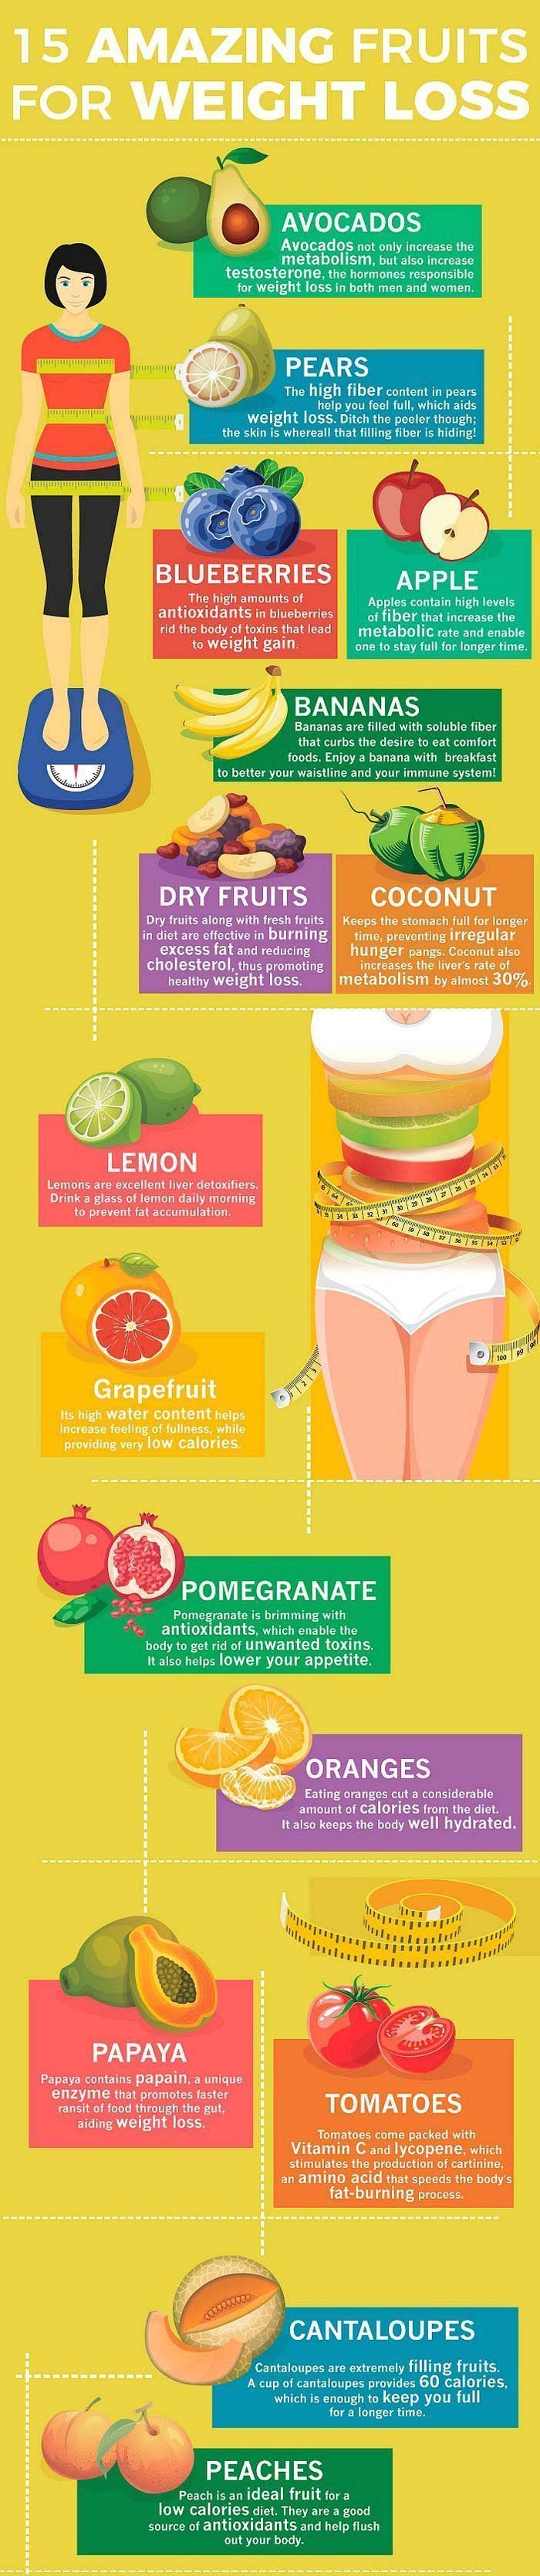 Best foods to help you burn fat.15 amazing fruits for weight loss